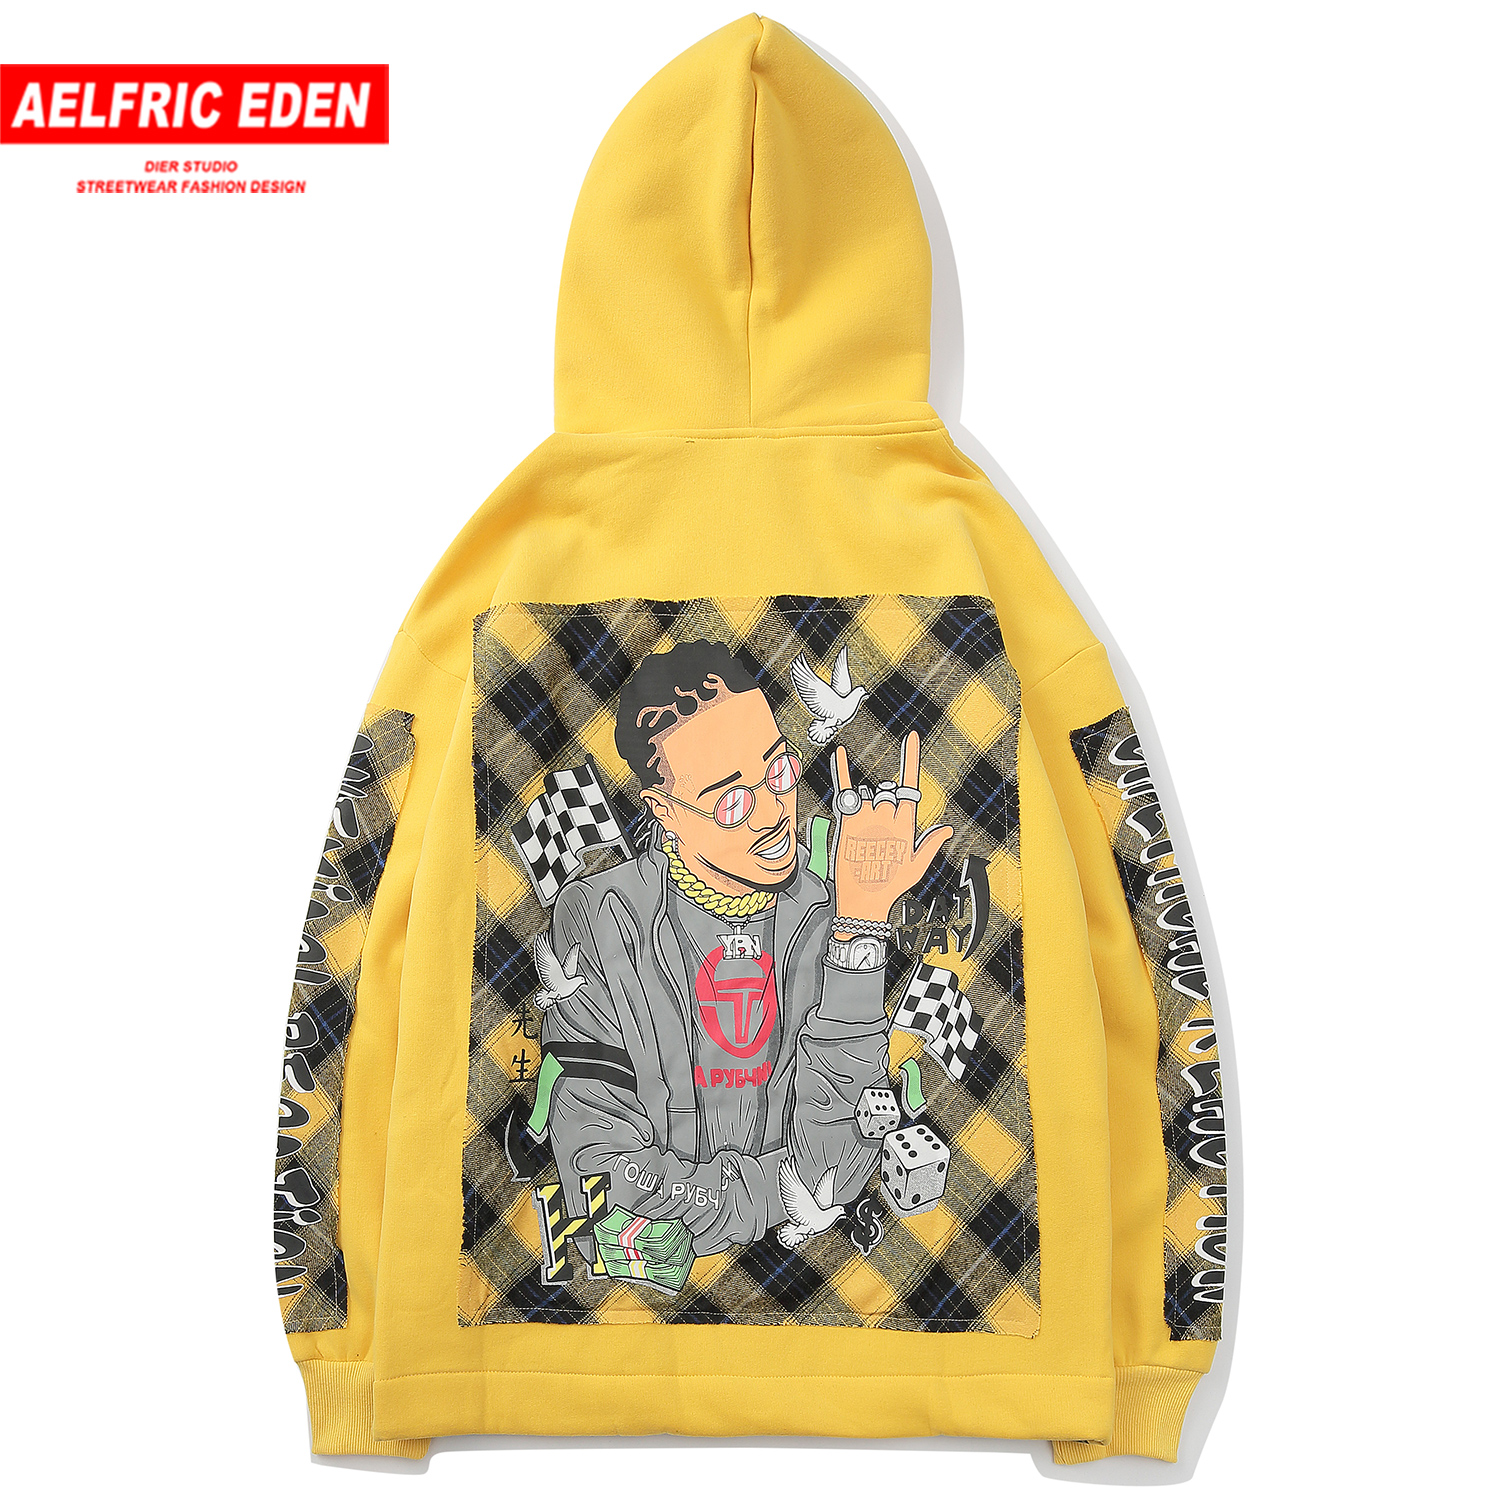 Aelfric Eden Patchwork Plaid Printed Thick Hoodies Men 2019 Harajuku Hip Hop Pullover Casual Cotton Hooded Sweatshirt Streetwear